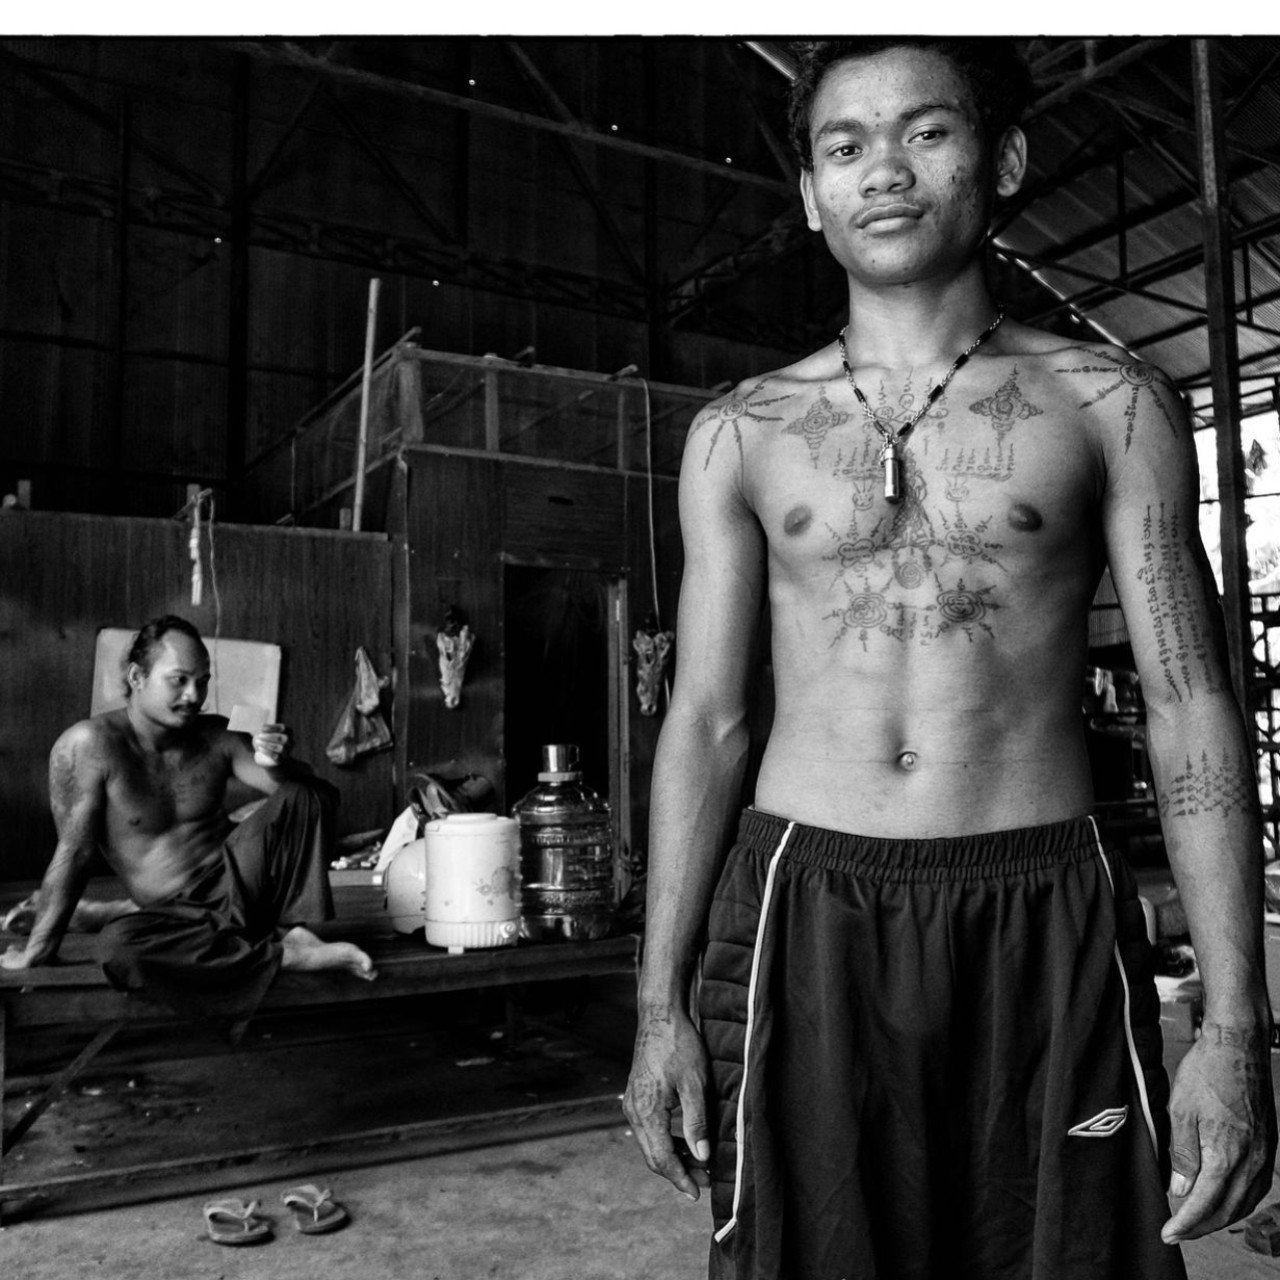 The magical tattoo artists of Cambodia | South China Morning Post